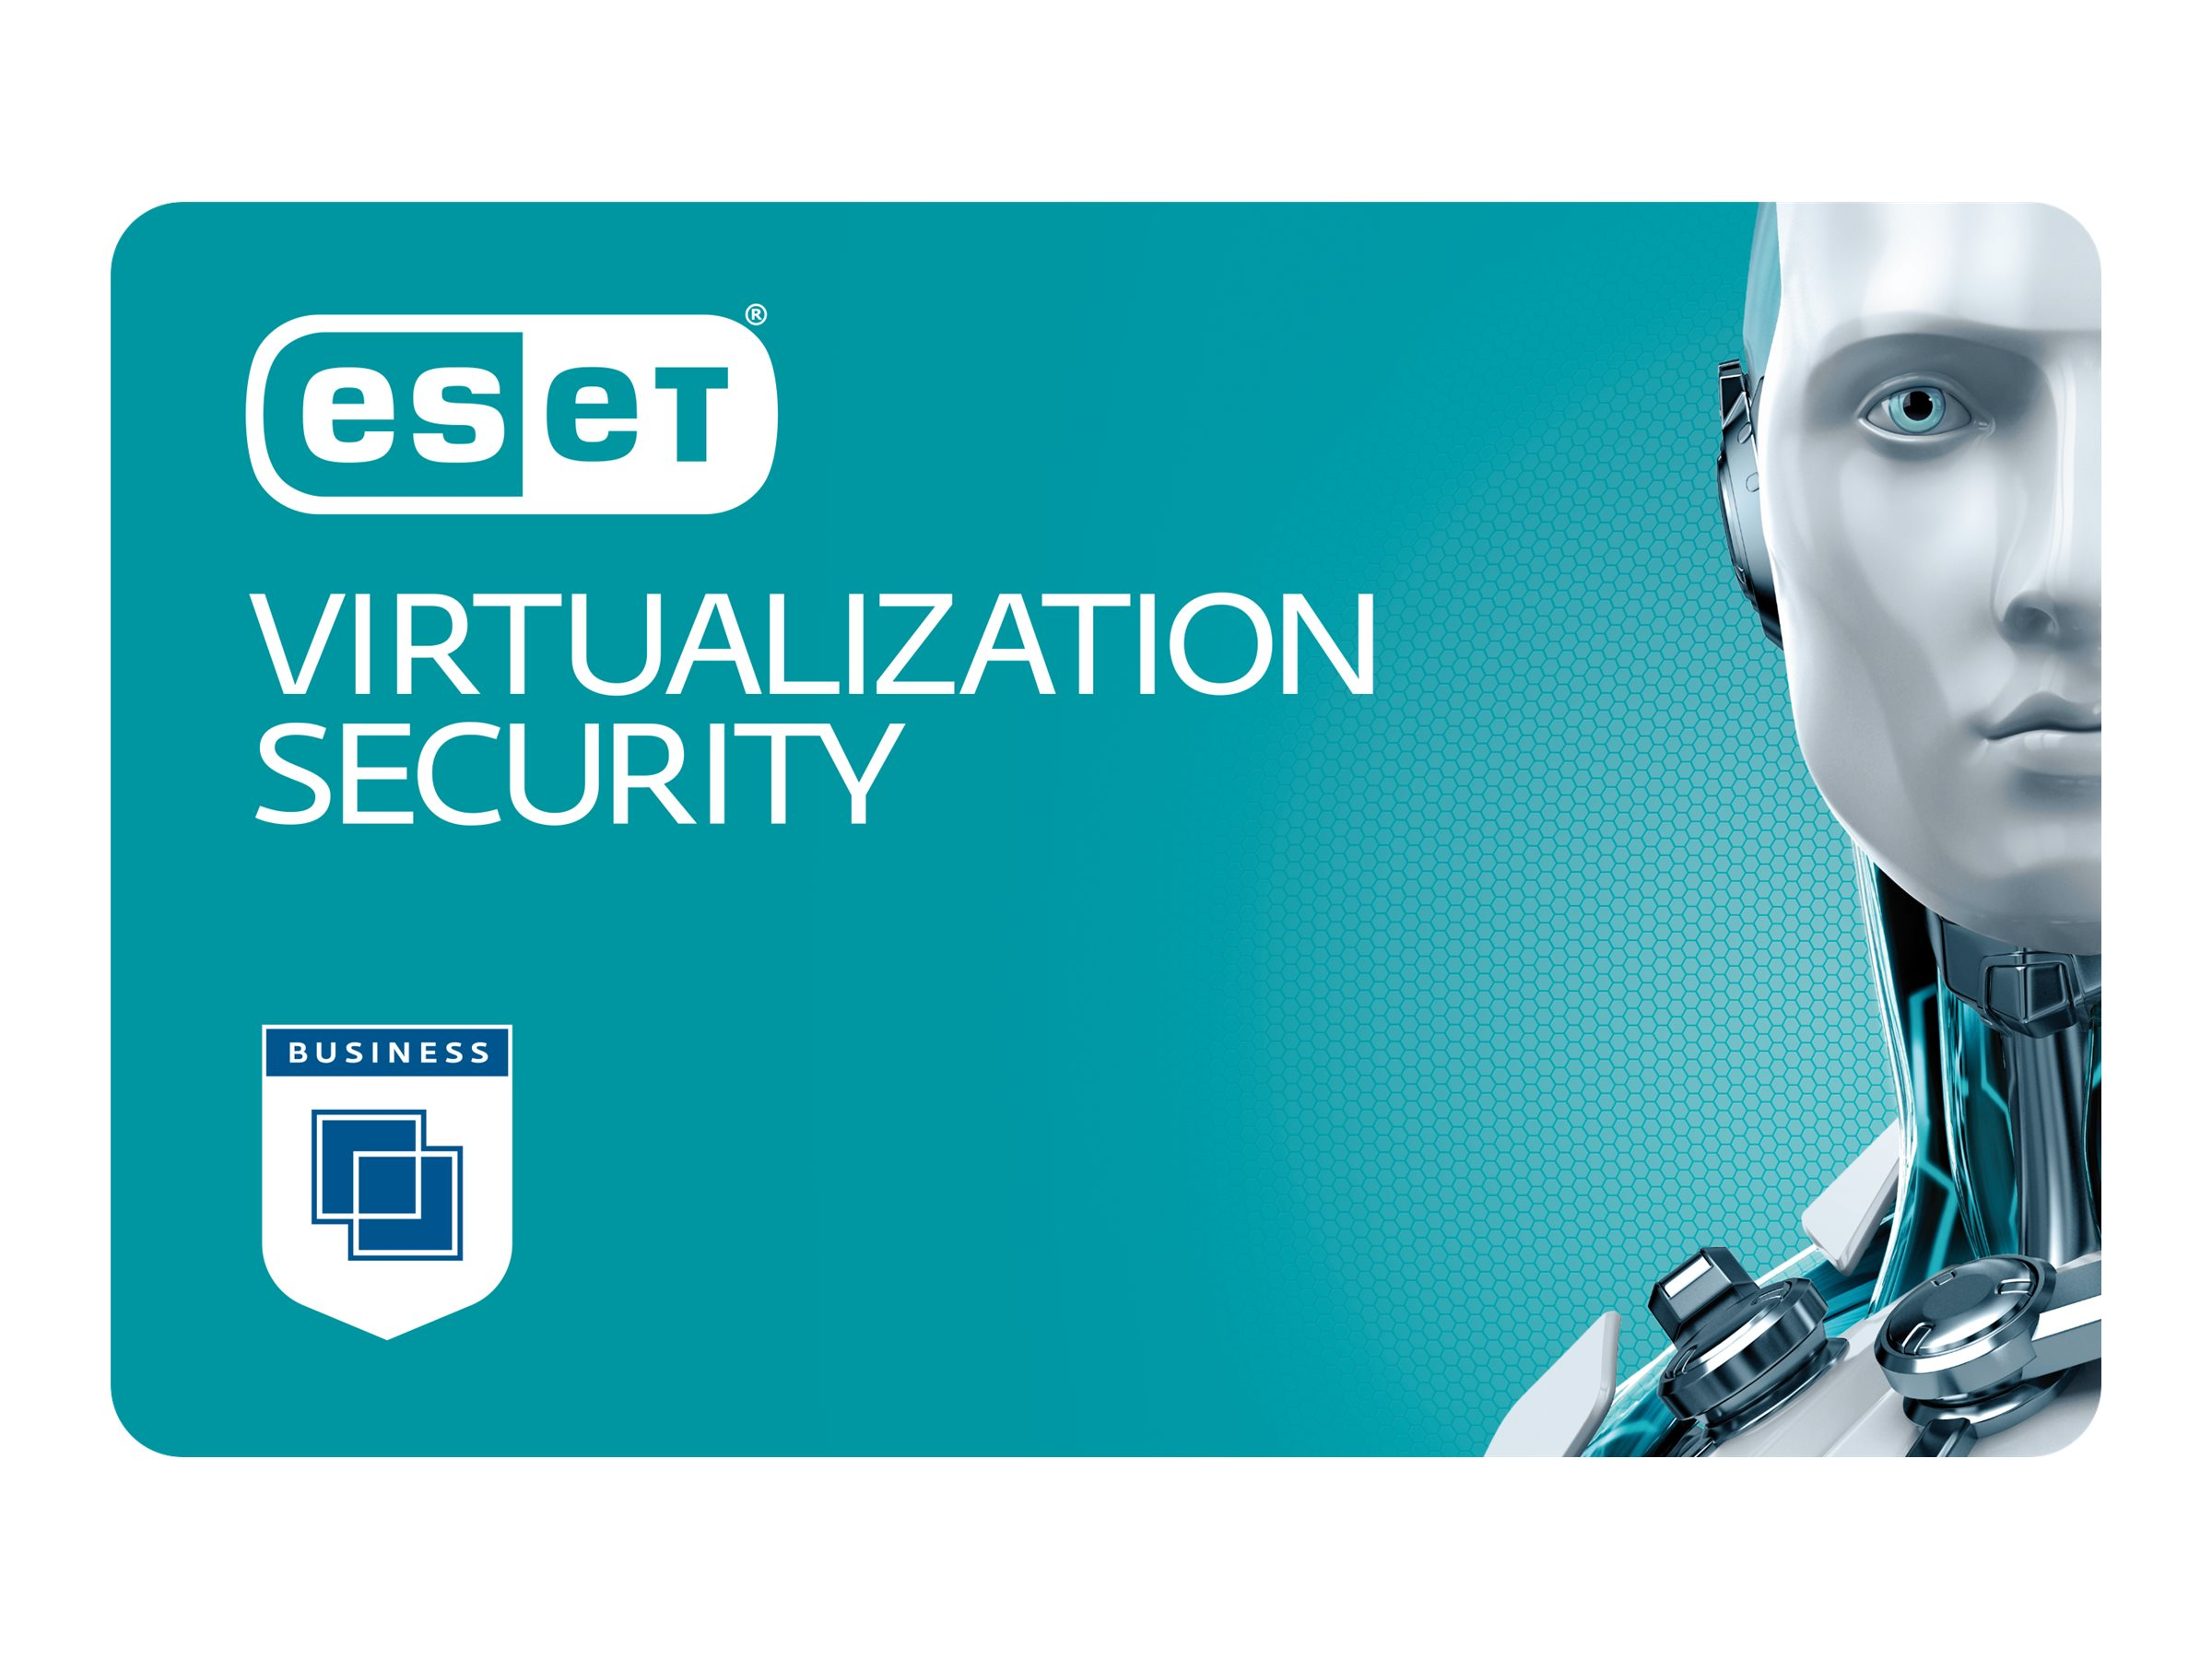 ESET Virtualization Security - Abonnement-Lizenz (3 Jahre) - 1 virtuelle Maschine - Volumen - 250-499 Lizenzen